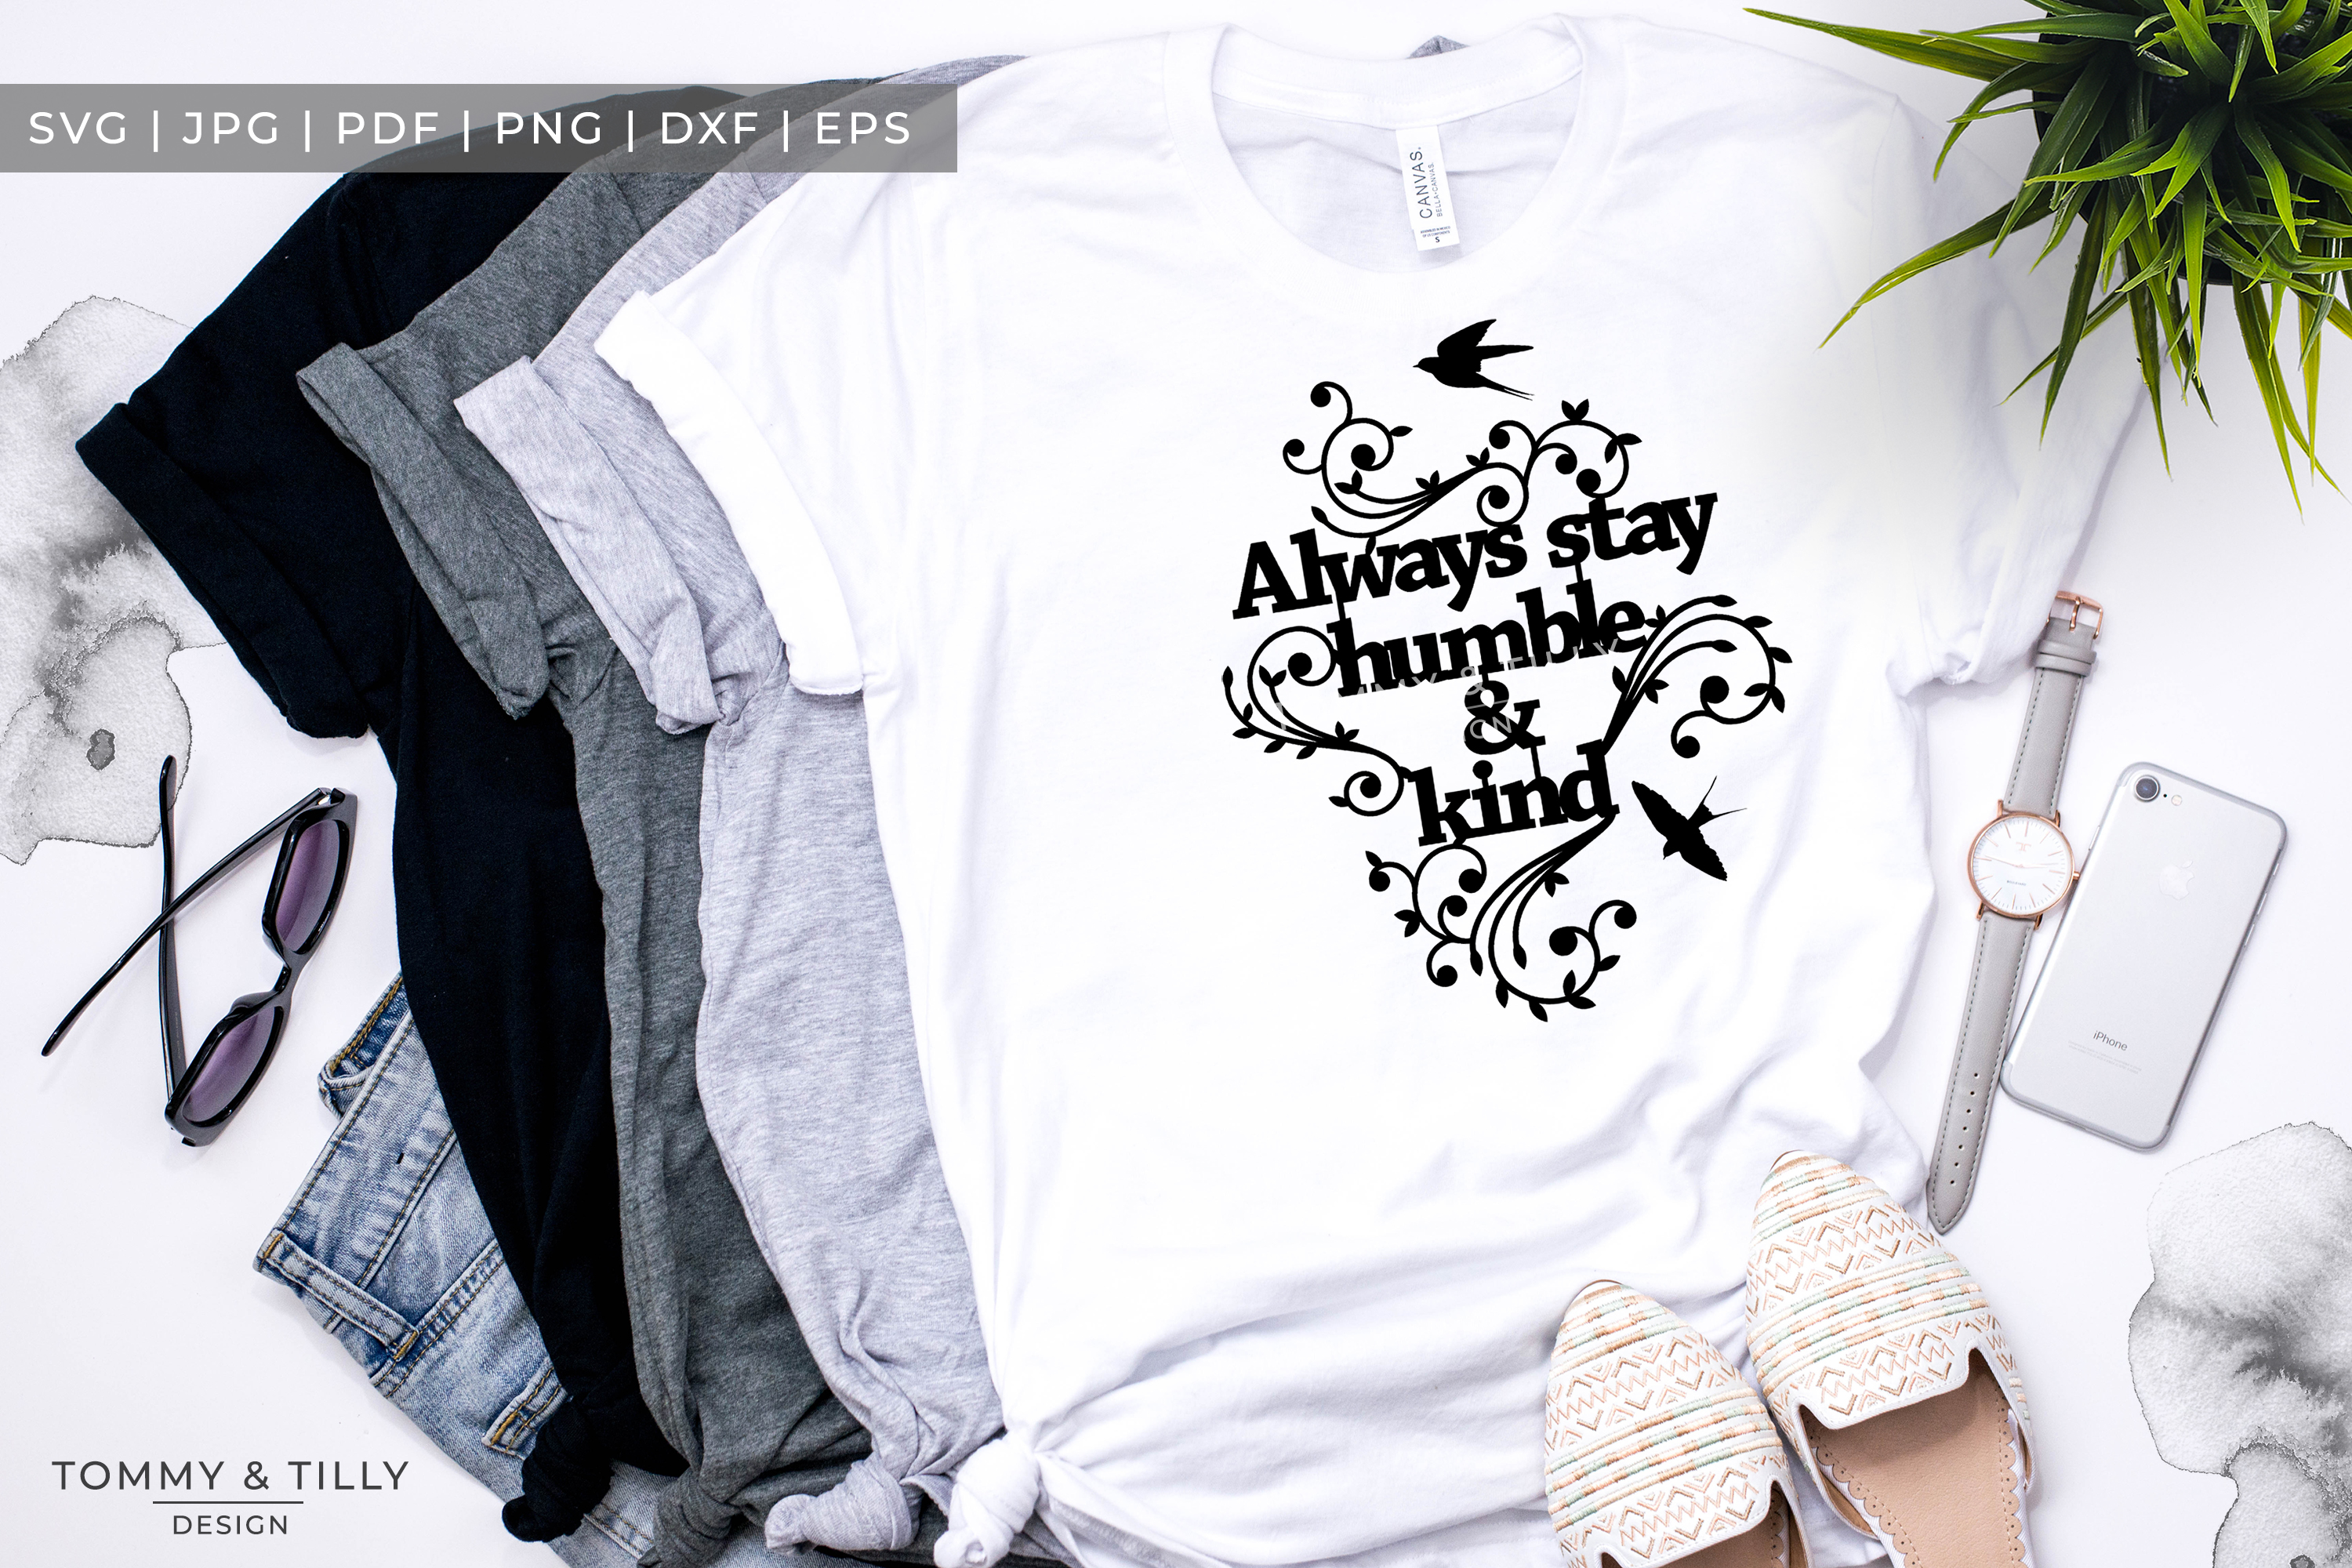 Always stay humble & kind - Papercut SVG EPS DXF PNG PDF example image 4